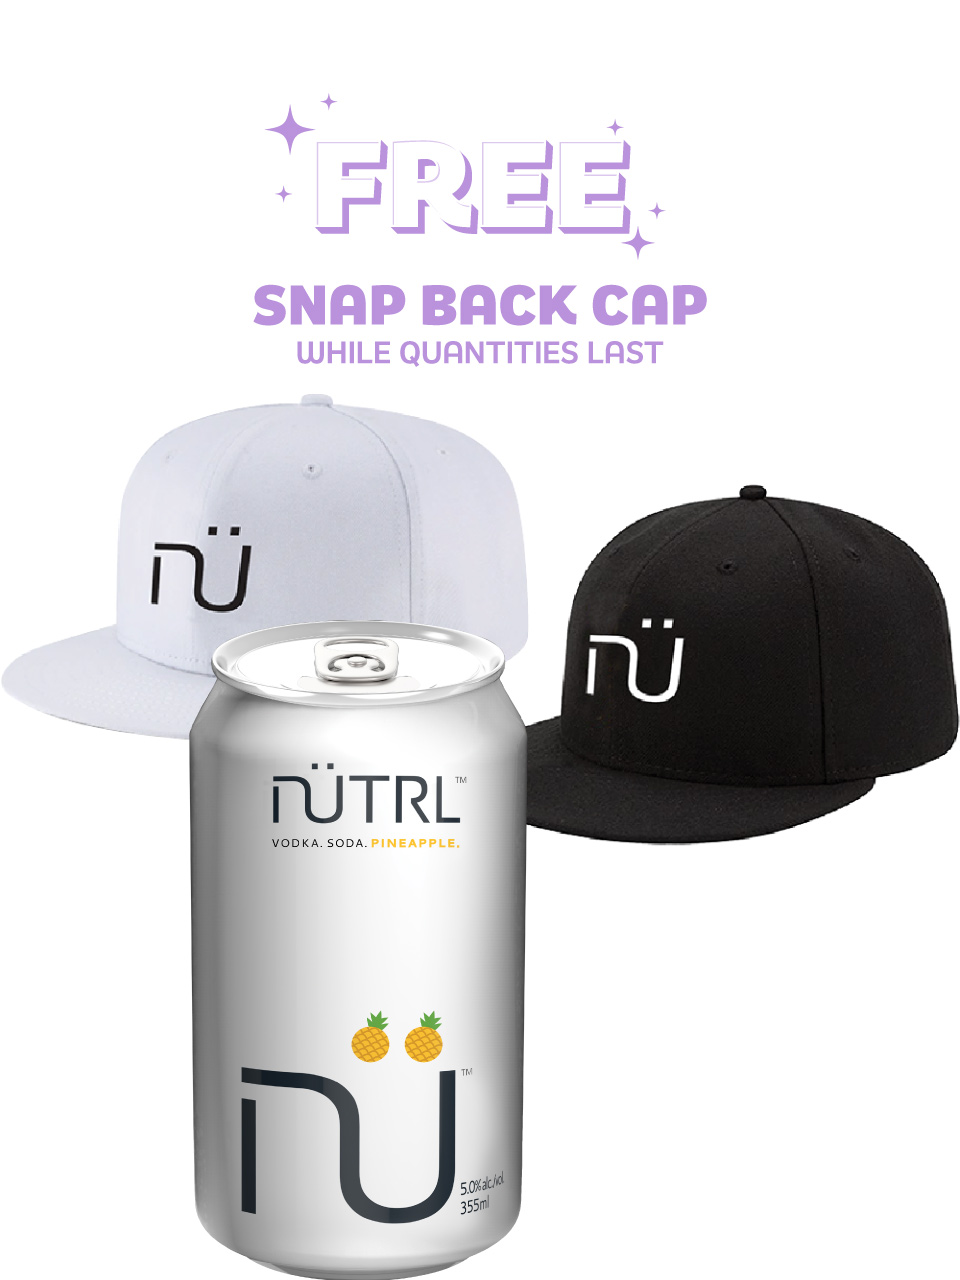 NUTRL Vodka Soda Pineapple 6 Pack Cans